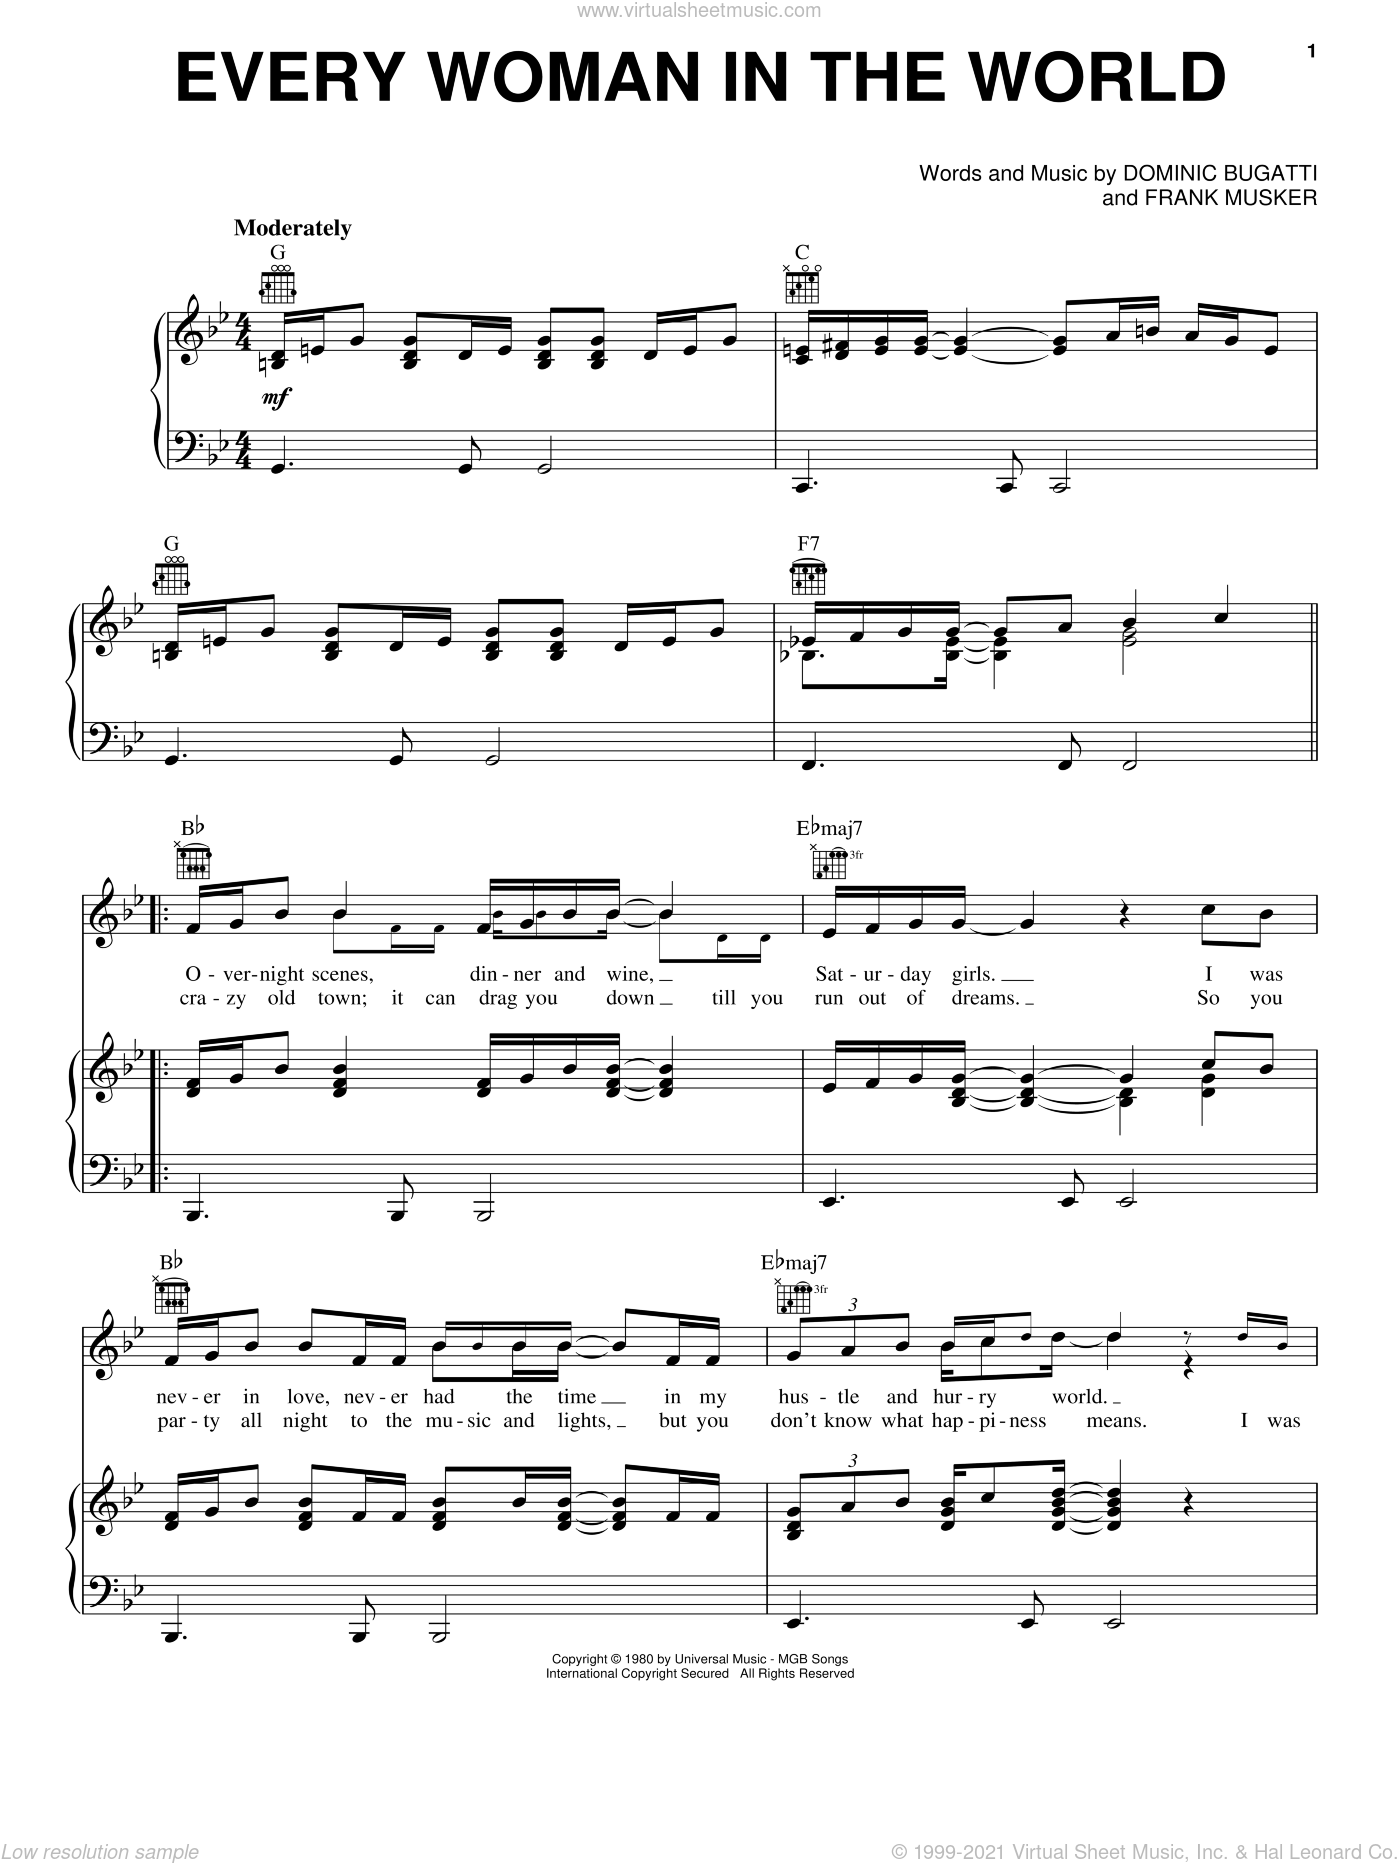 Every Woman In The World sheet music for voice, piano or guitar by Air Supply, Dominic Bugatti and Frank Musker, intermediate skill level